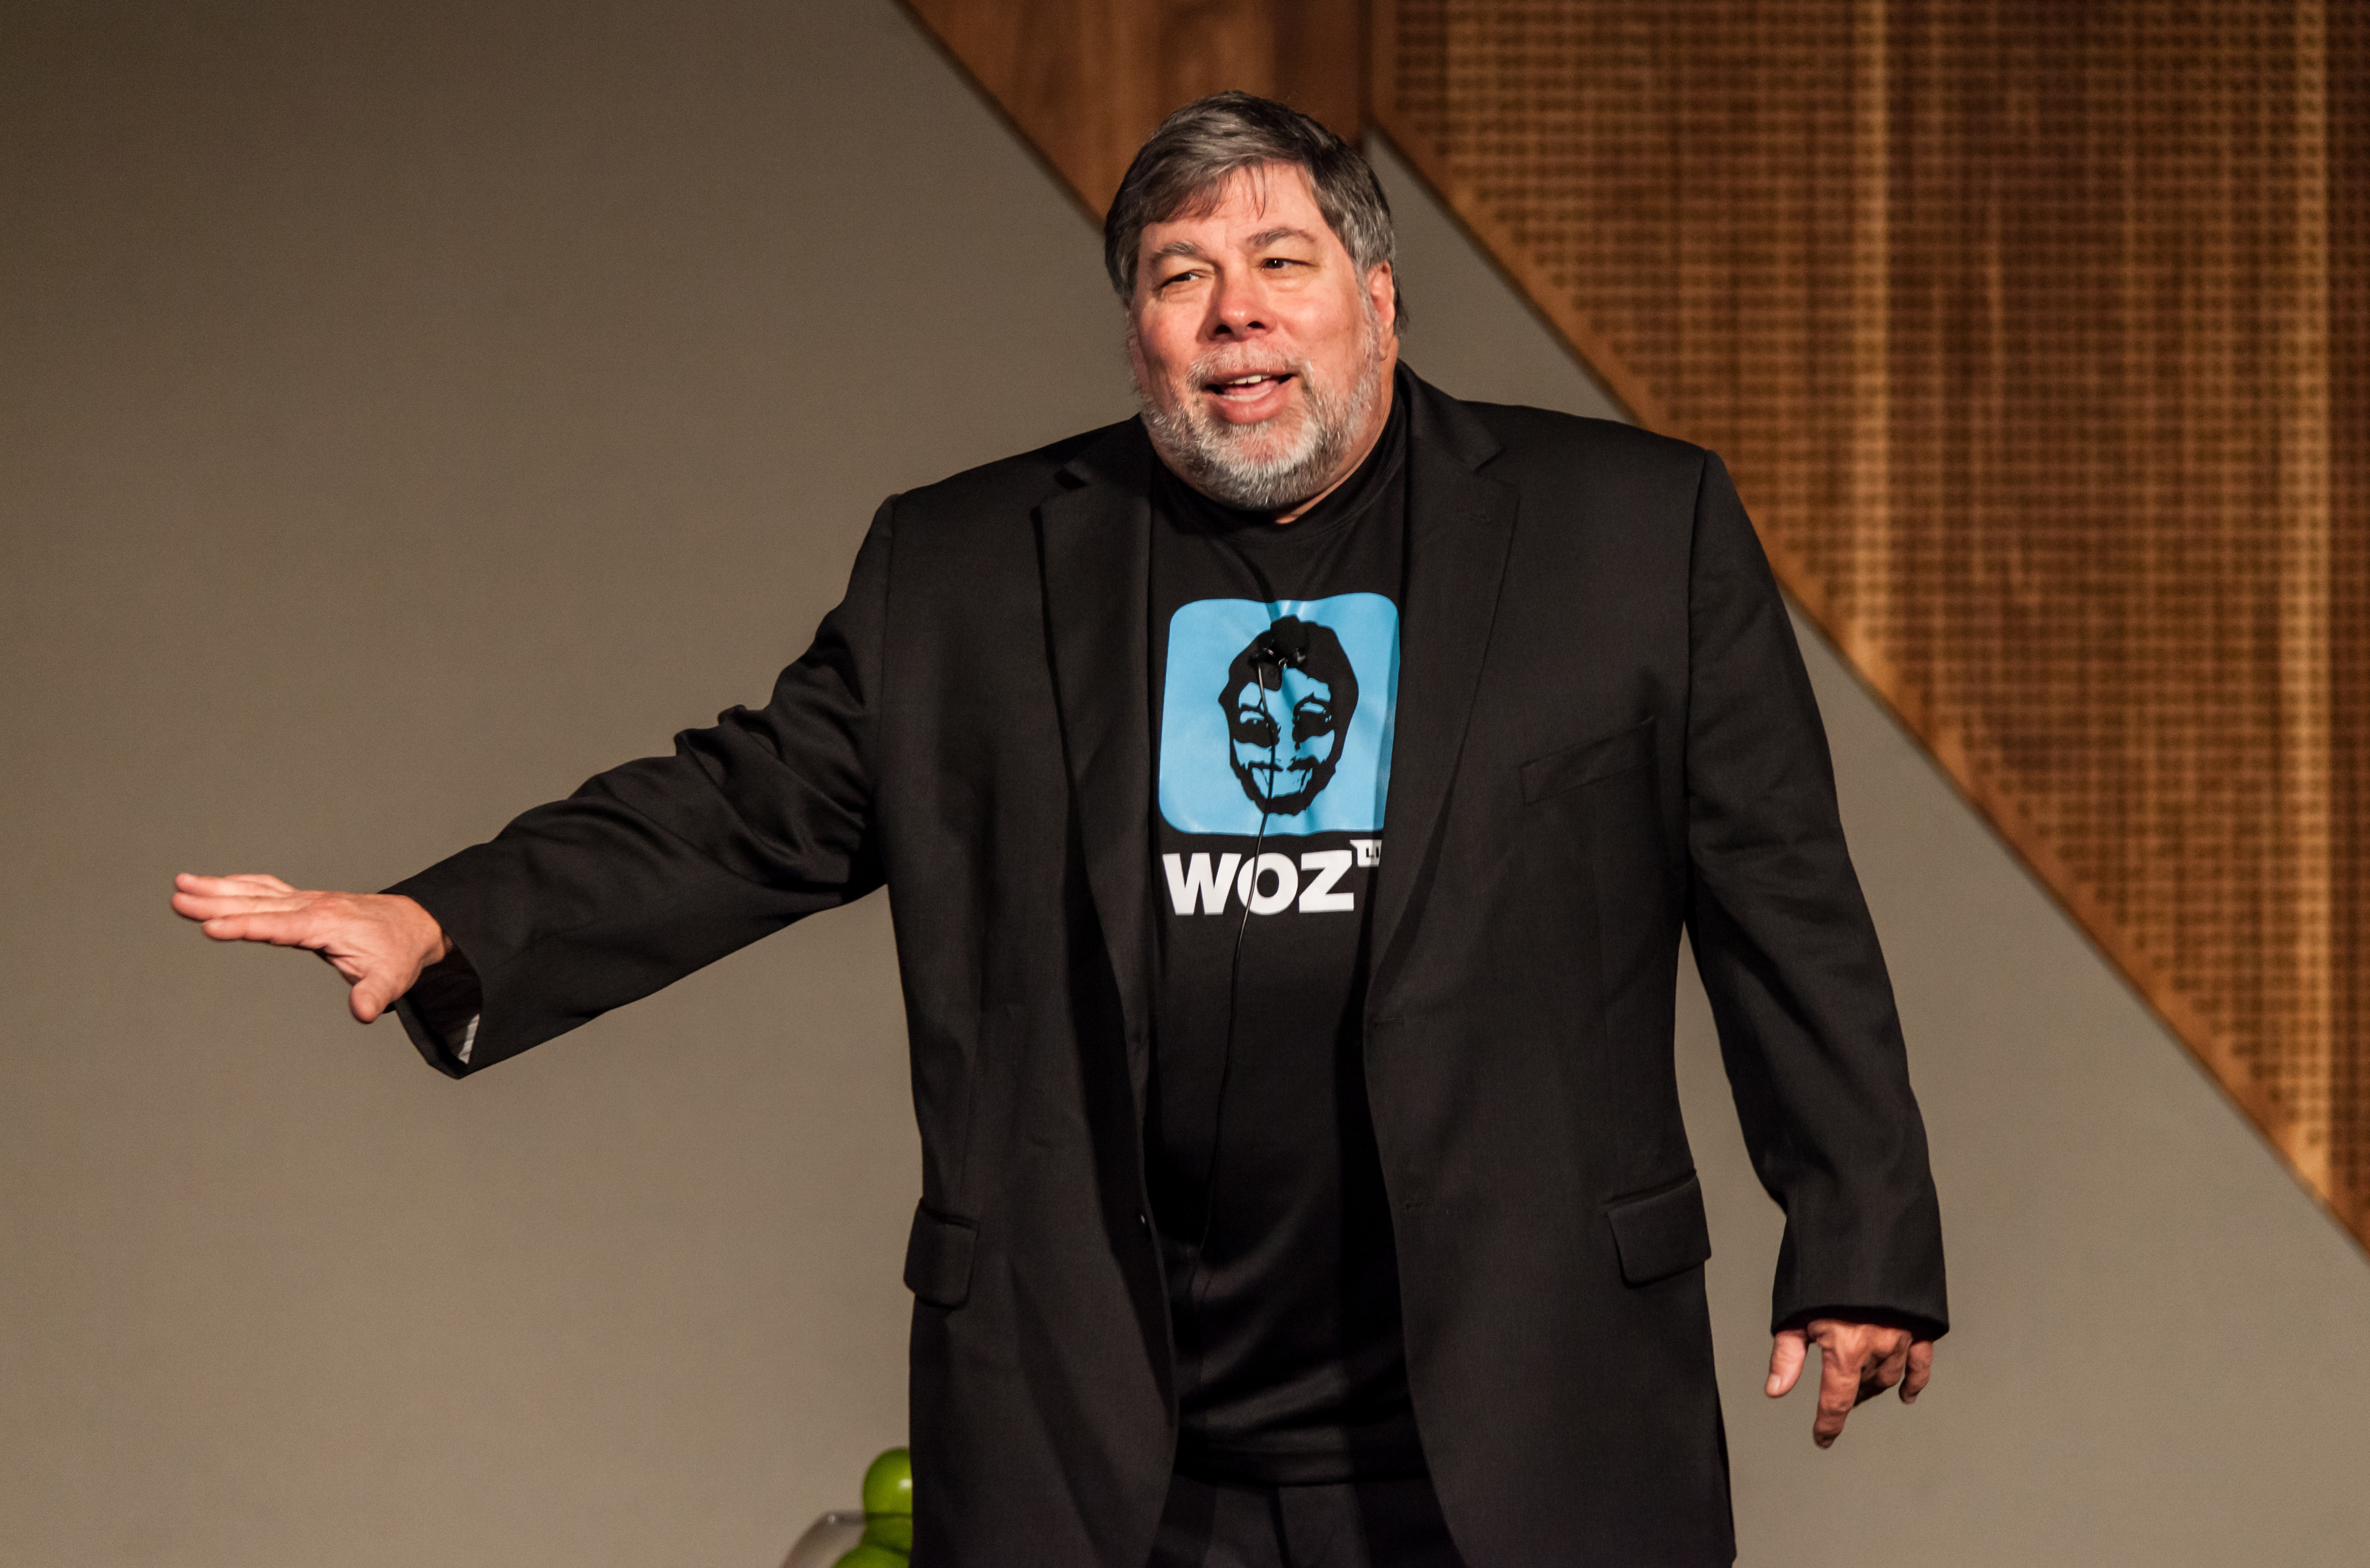 wozniak iphone 7